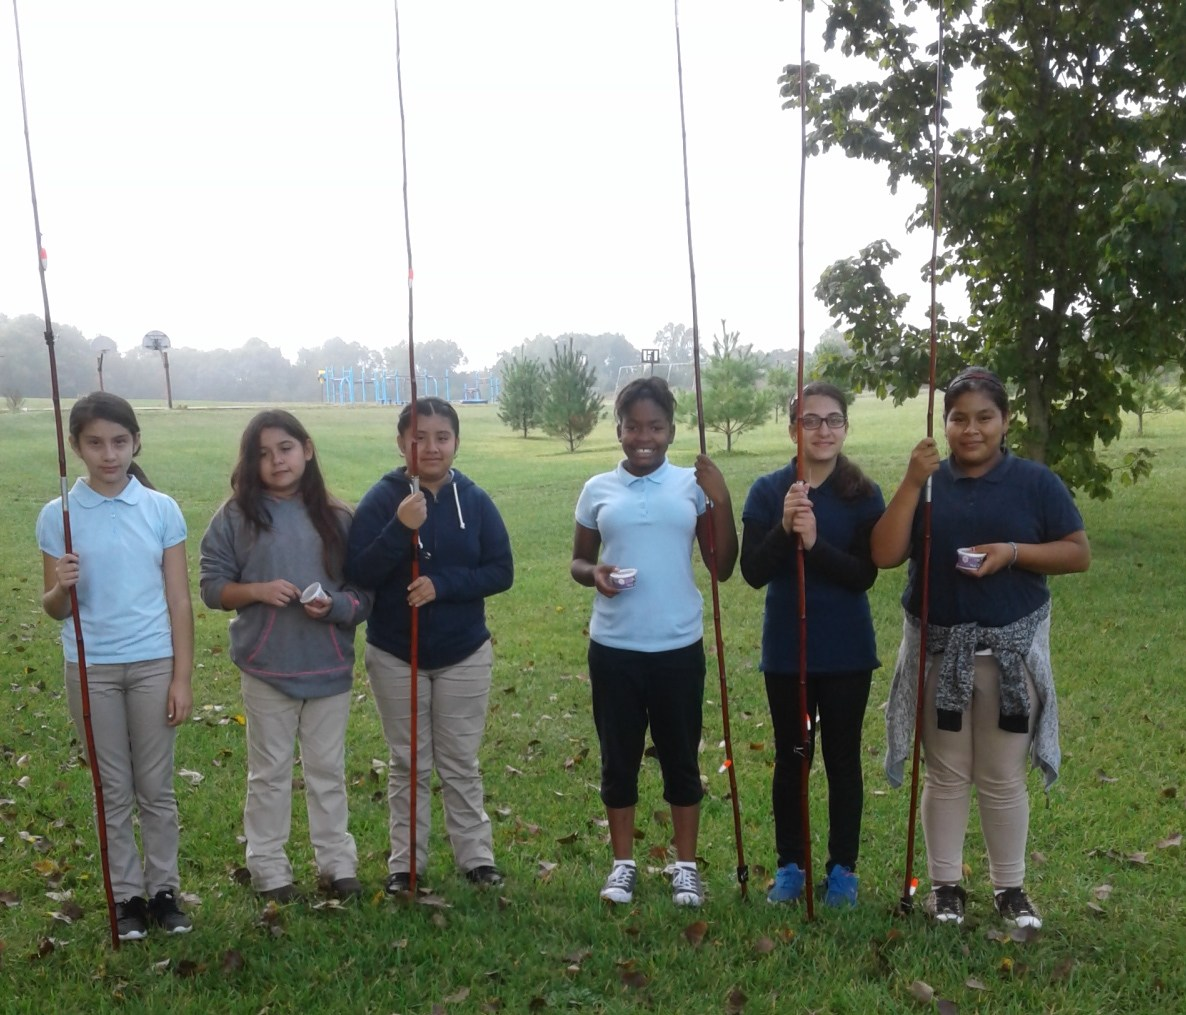 Upper El Students with fishing poles